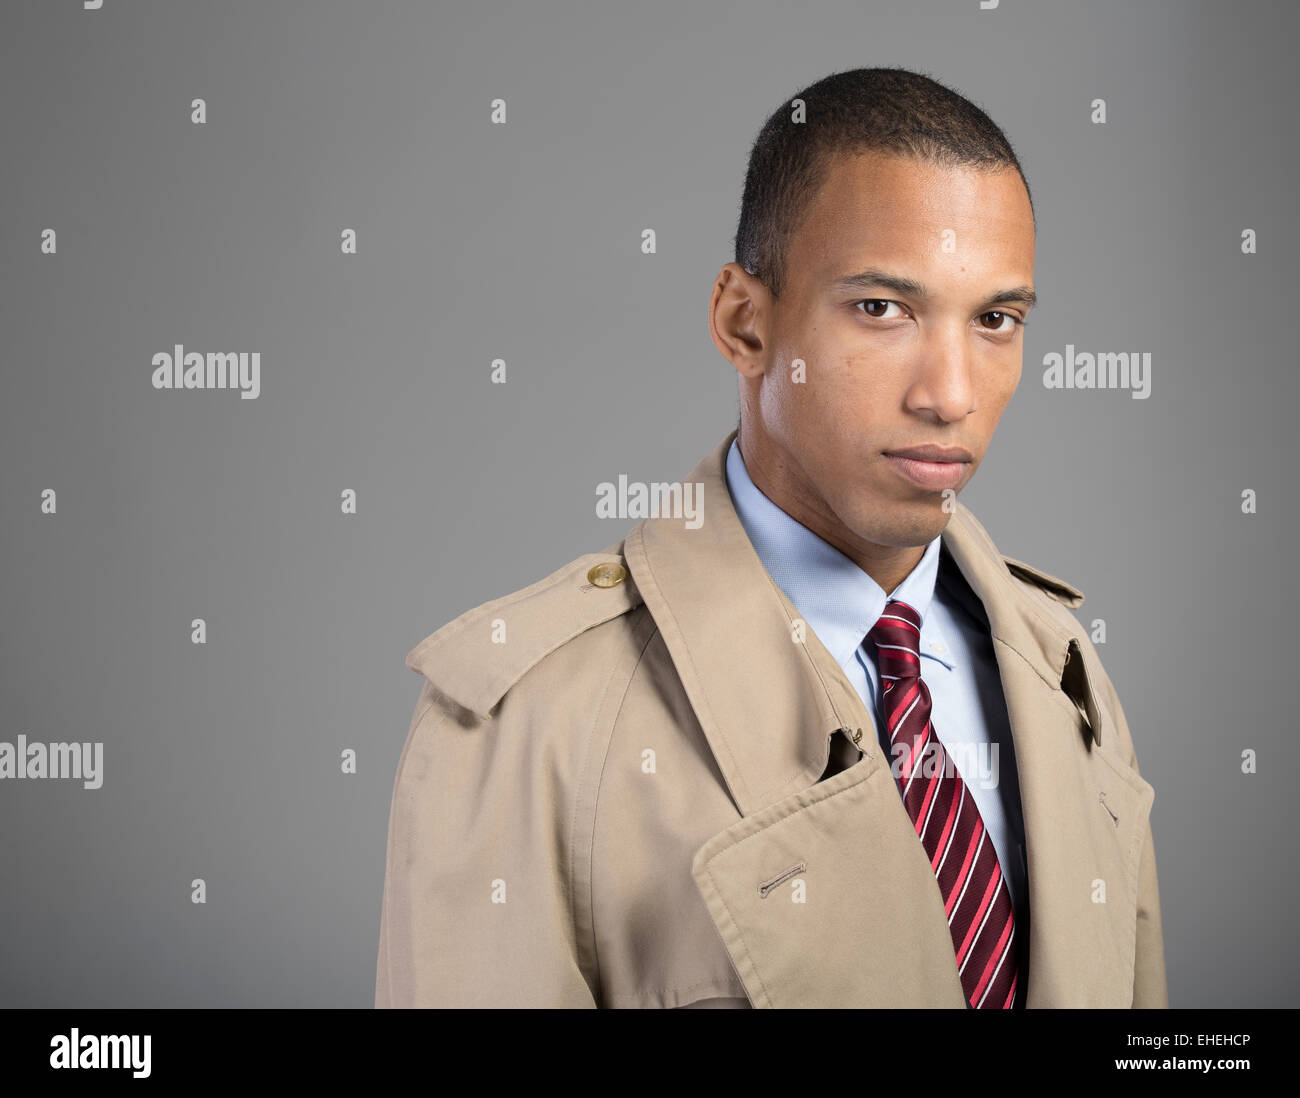 Businessman wearing suit tie and beige Burberry trench coat - Stock Image